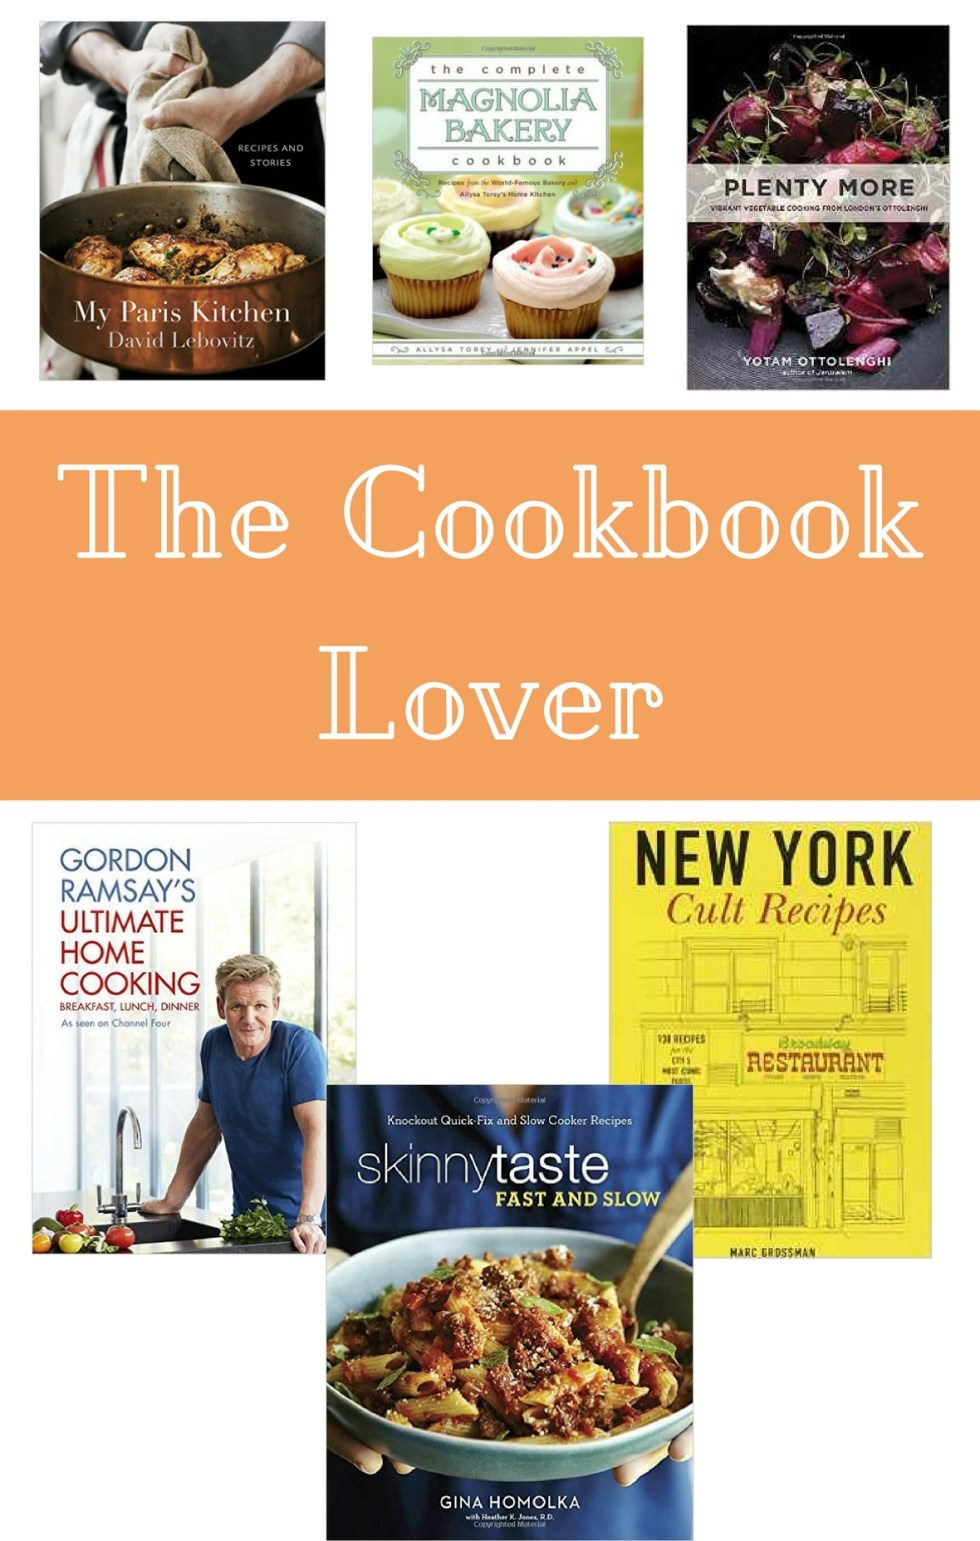 In The Kitchen With David Cookbook Recipes